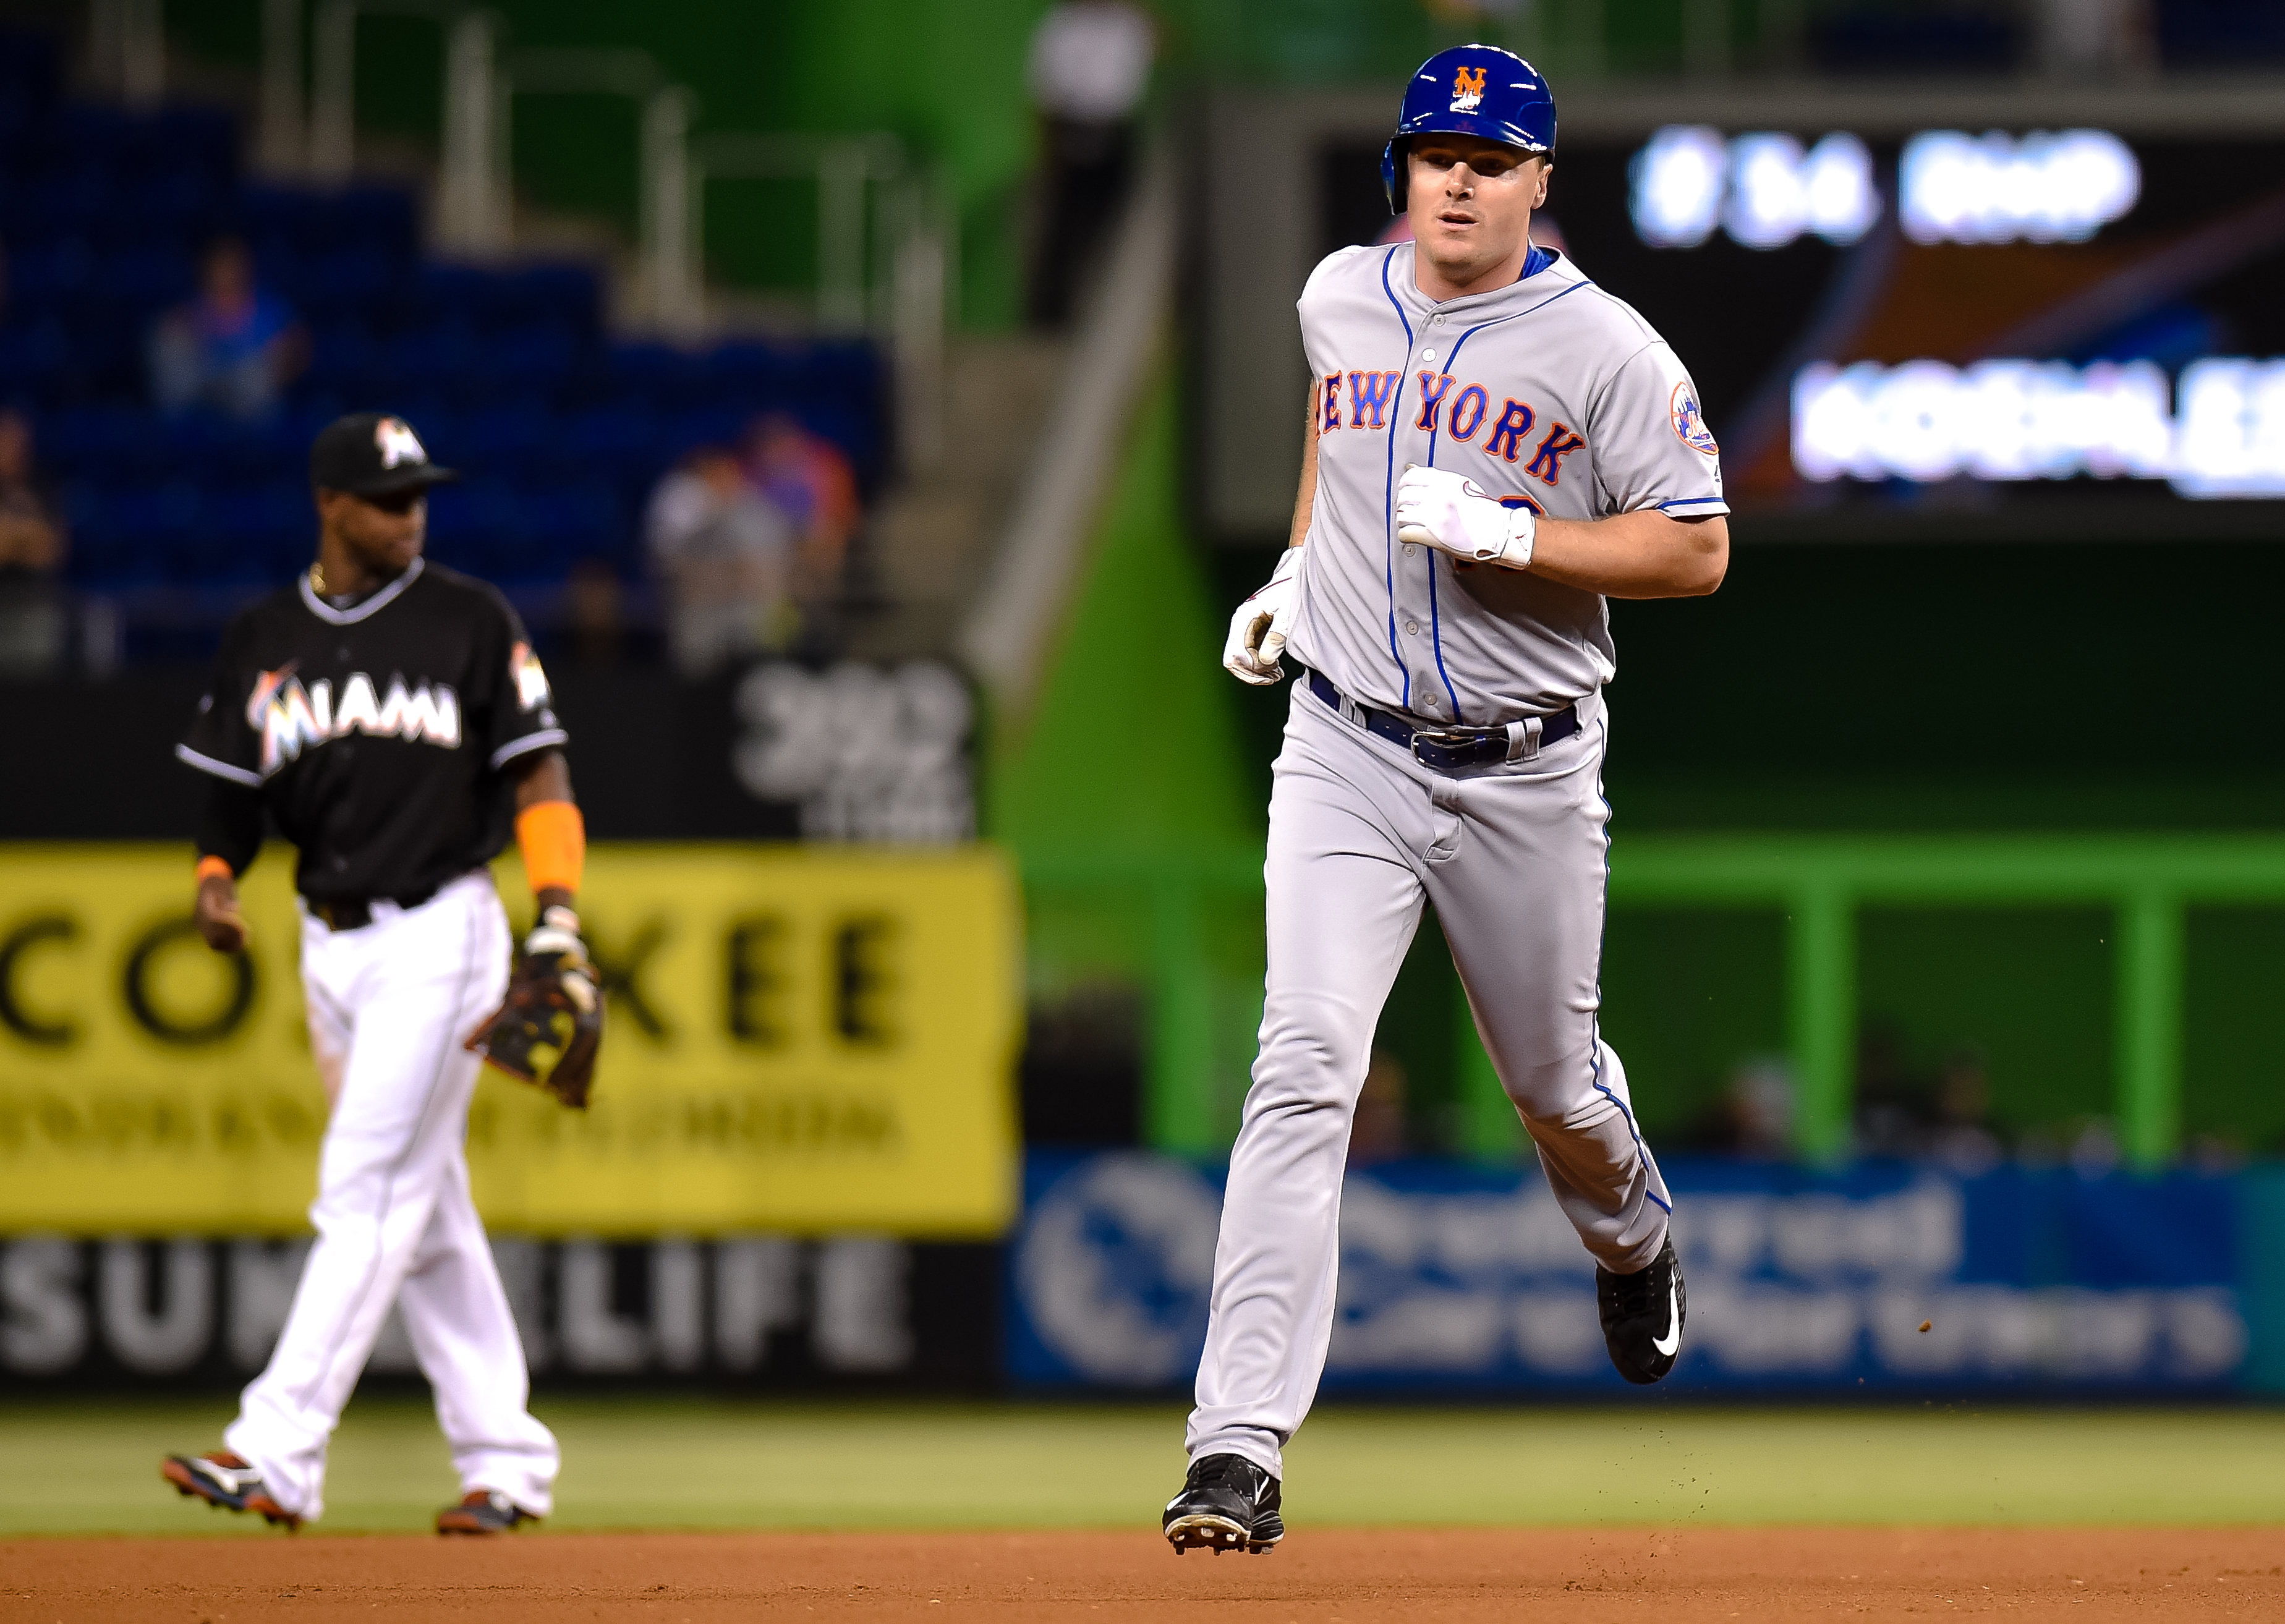 New York Mets, Toronto Blue Jays Discussing Jay Bruce Deal (Report)